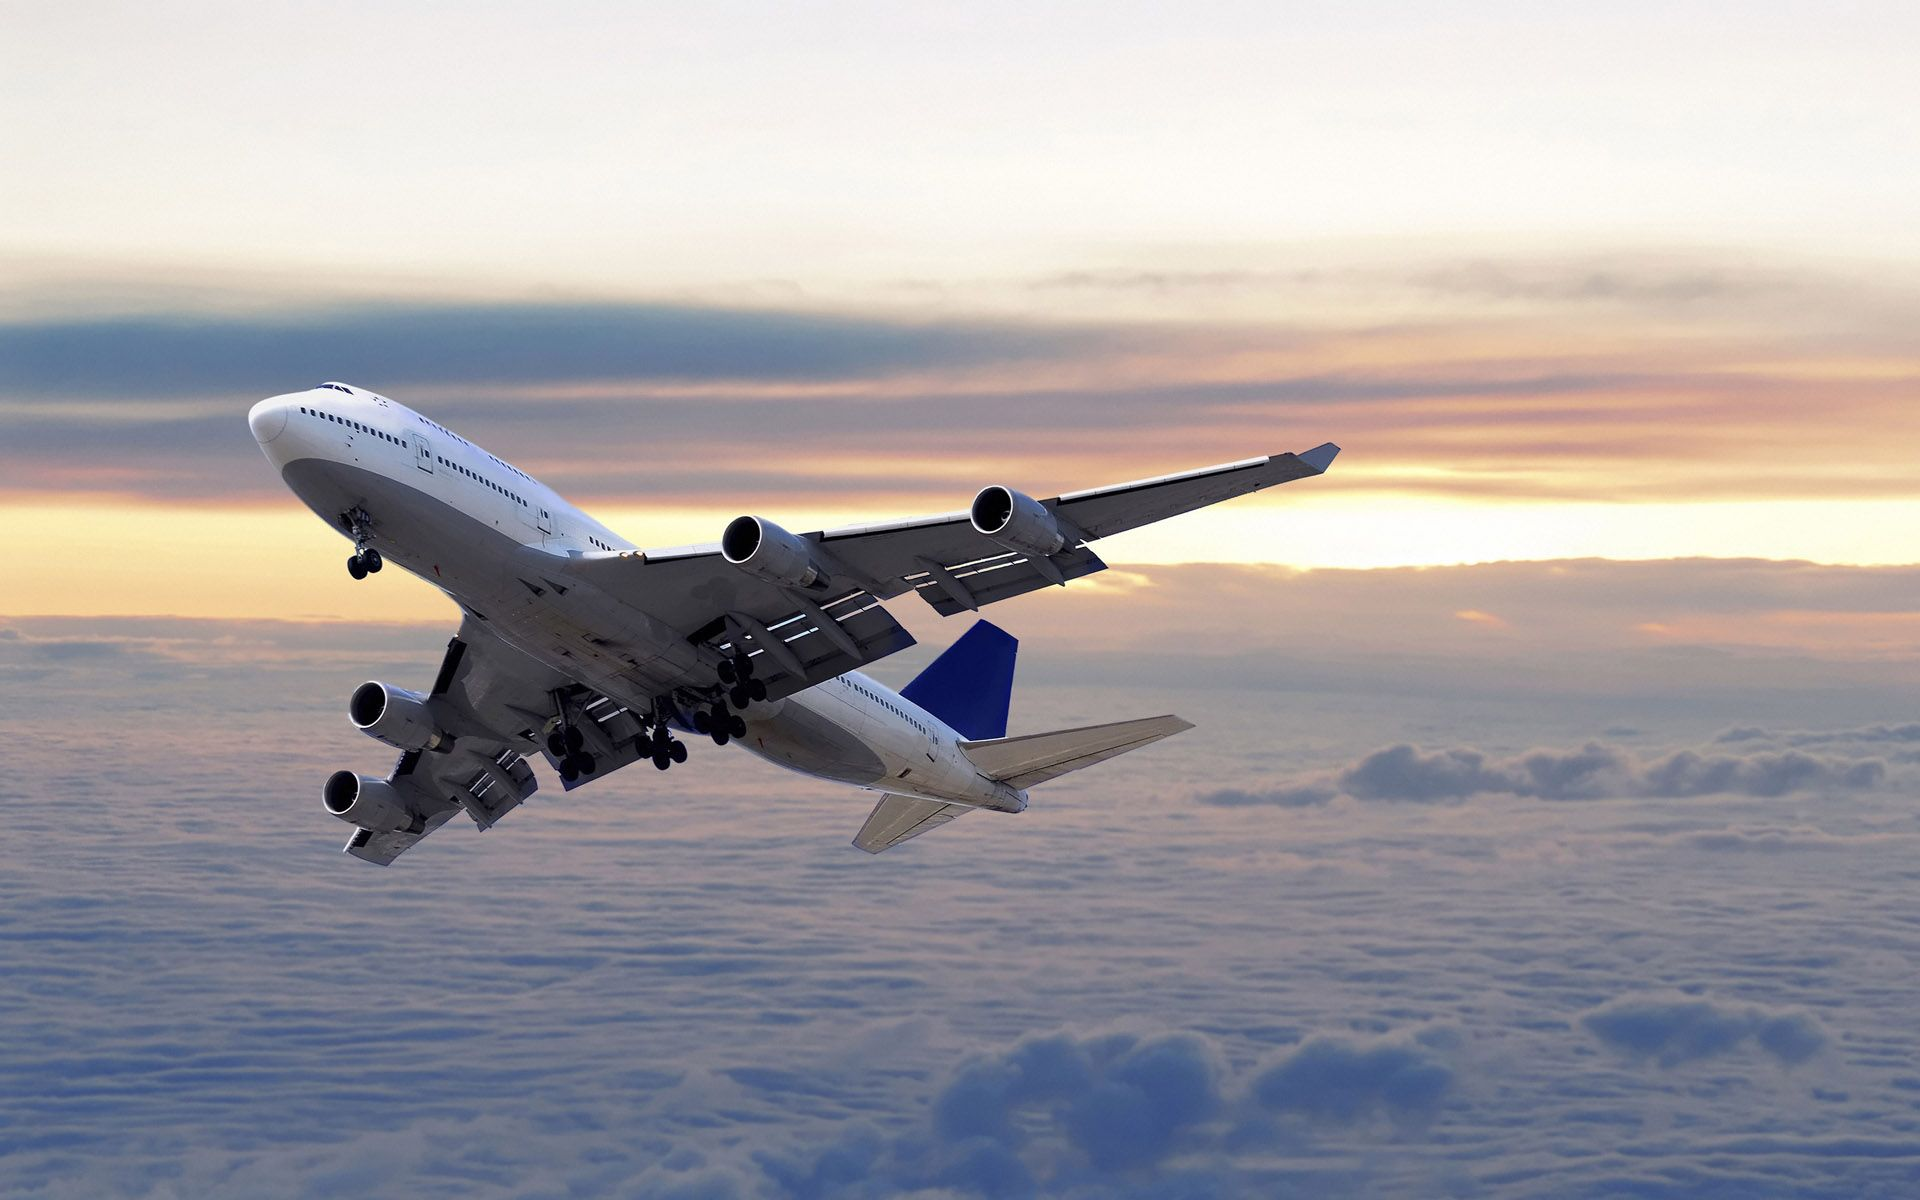 planes wallpapers, top beautiful planes pictures, 87-hqfx | images